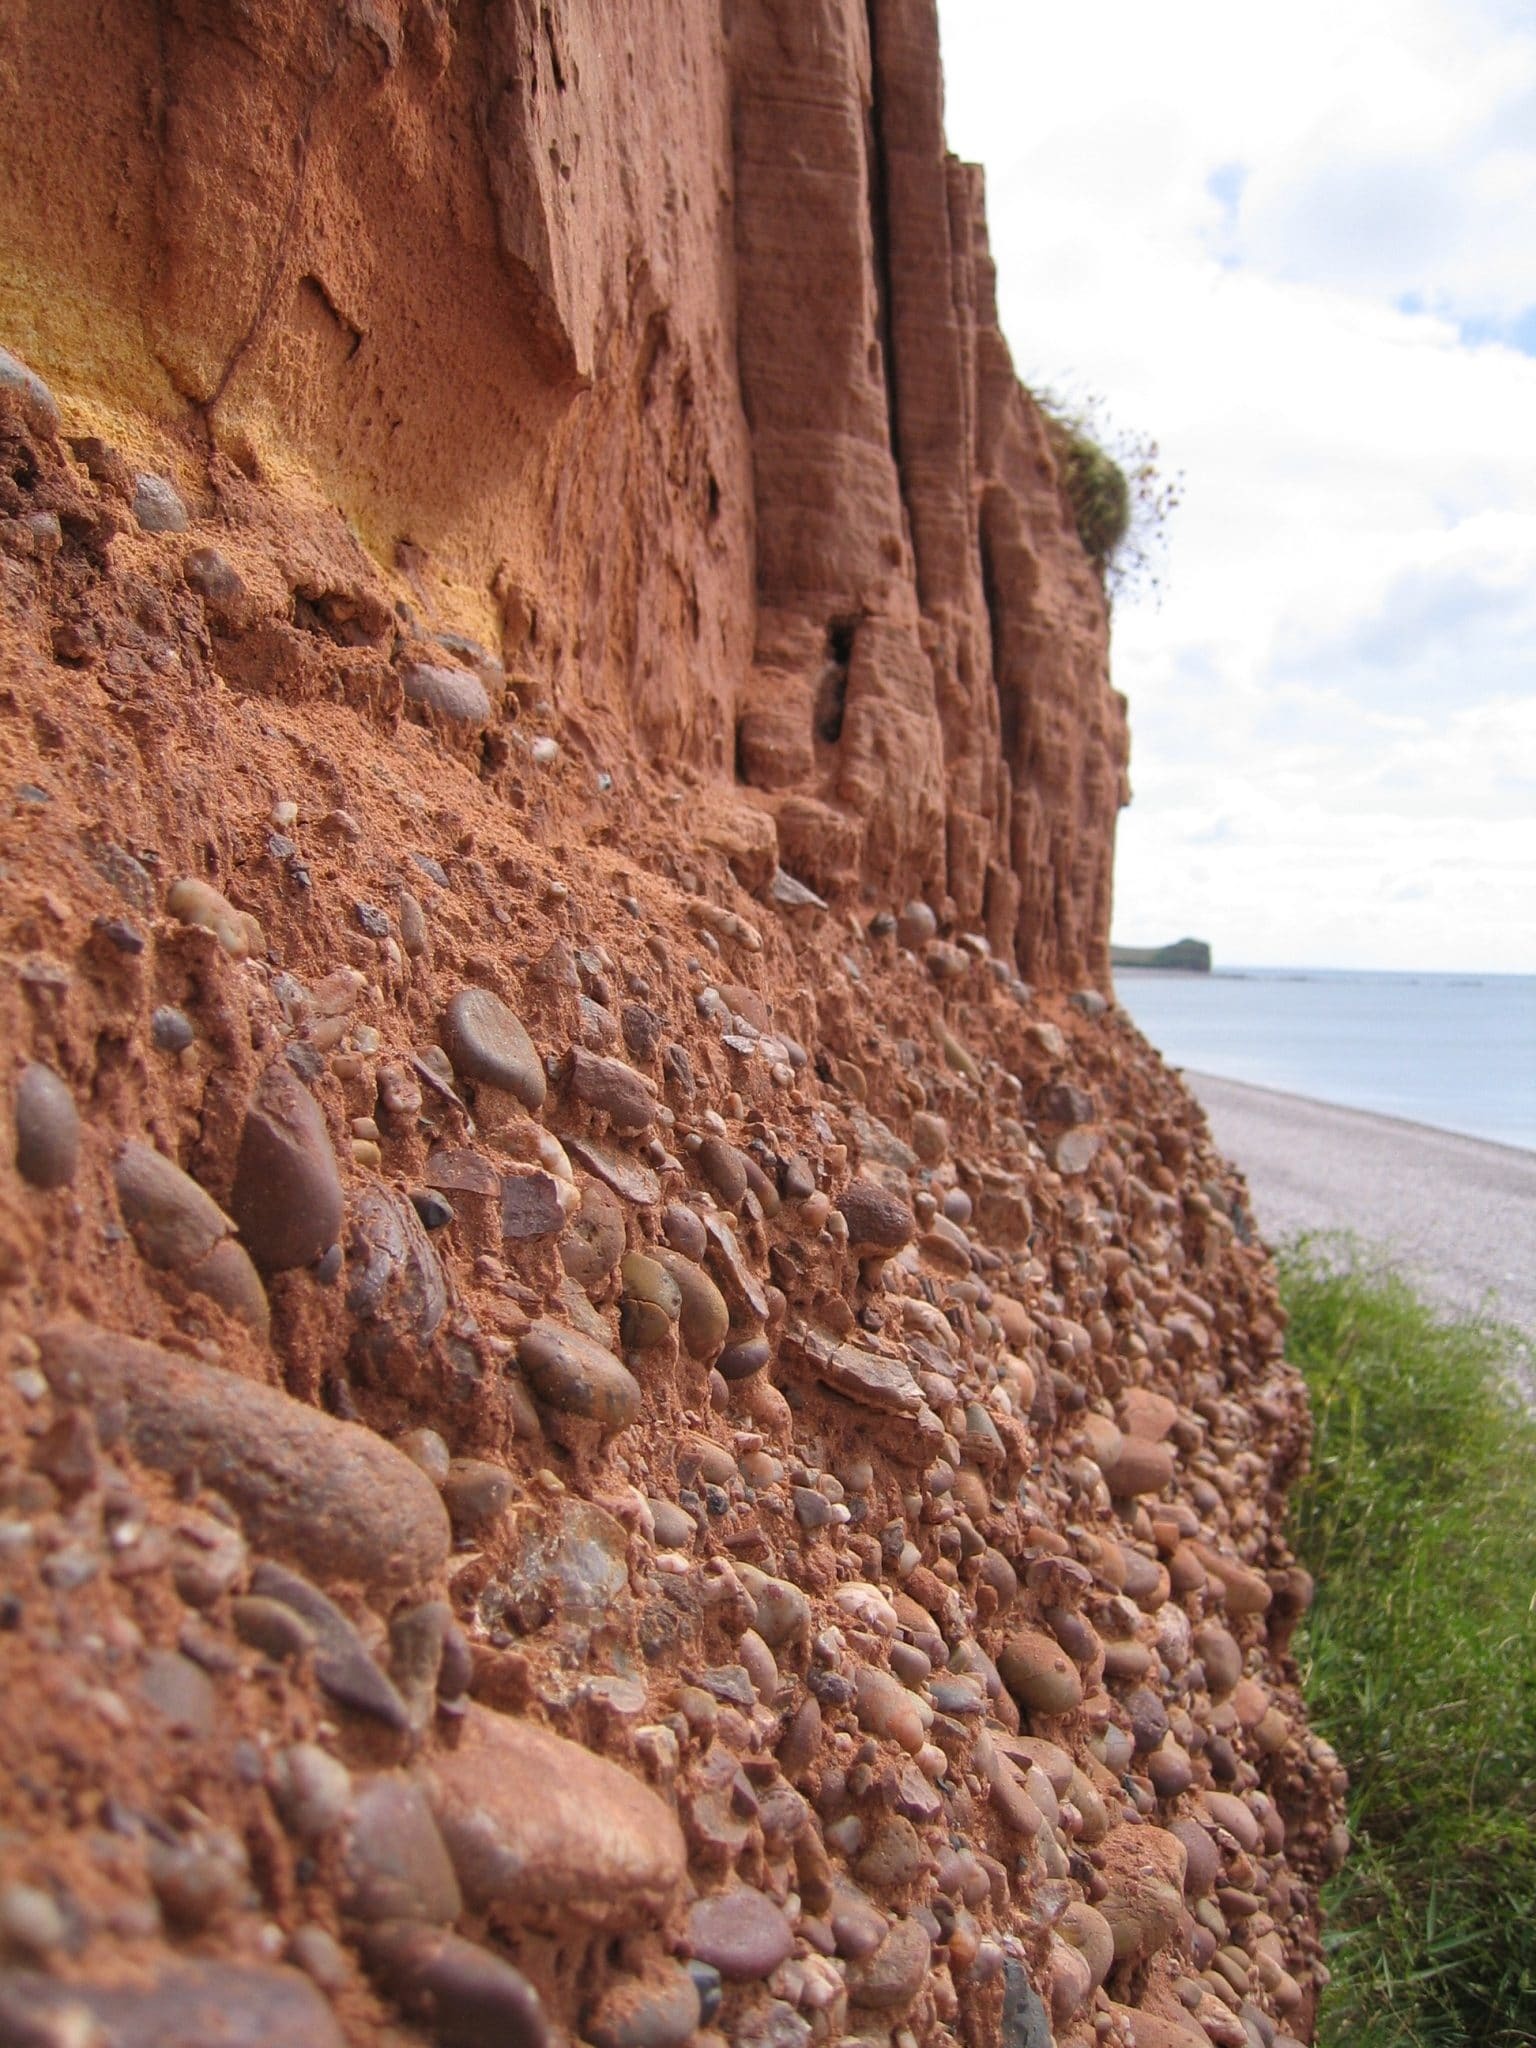 Photo of red cliffs and pebble bed layer above Budleigh Salterton Beach